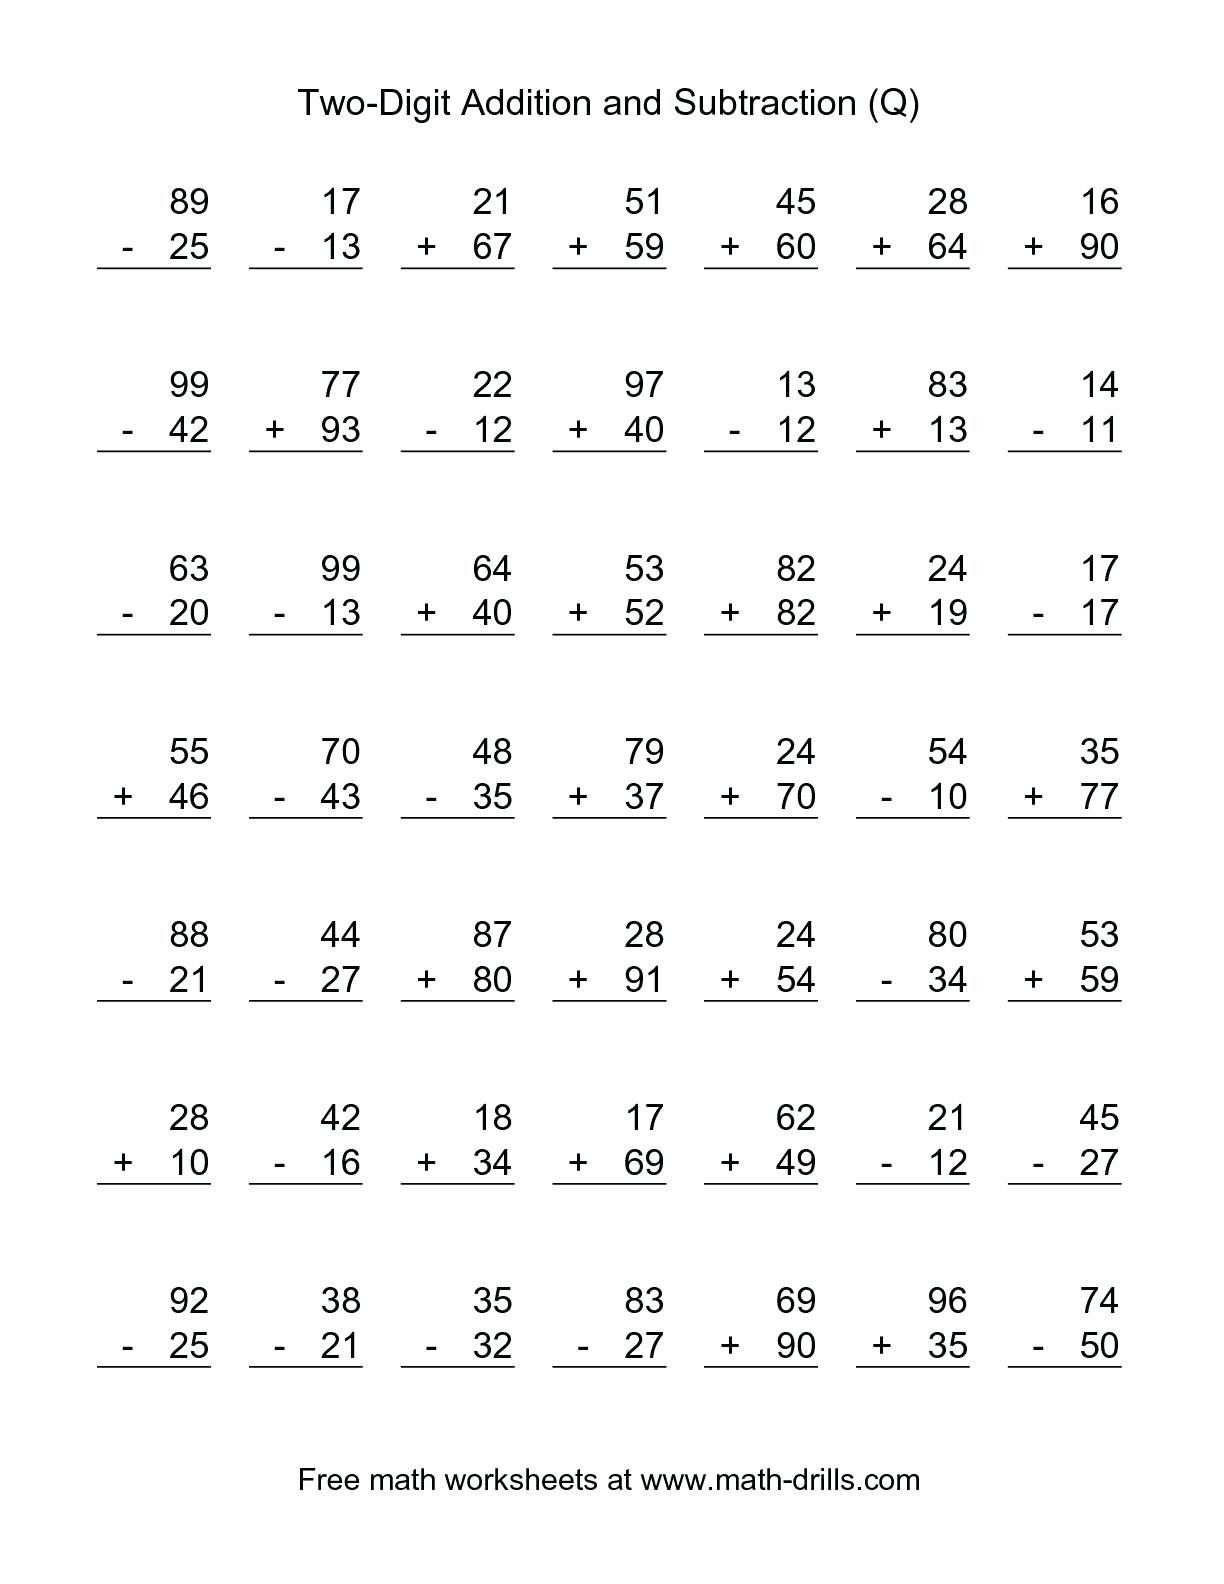 4 Free Math Worksheets Second Grade 2 Addition Add 3 Digit